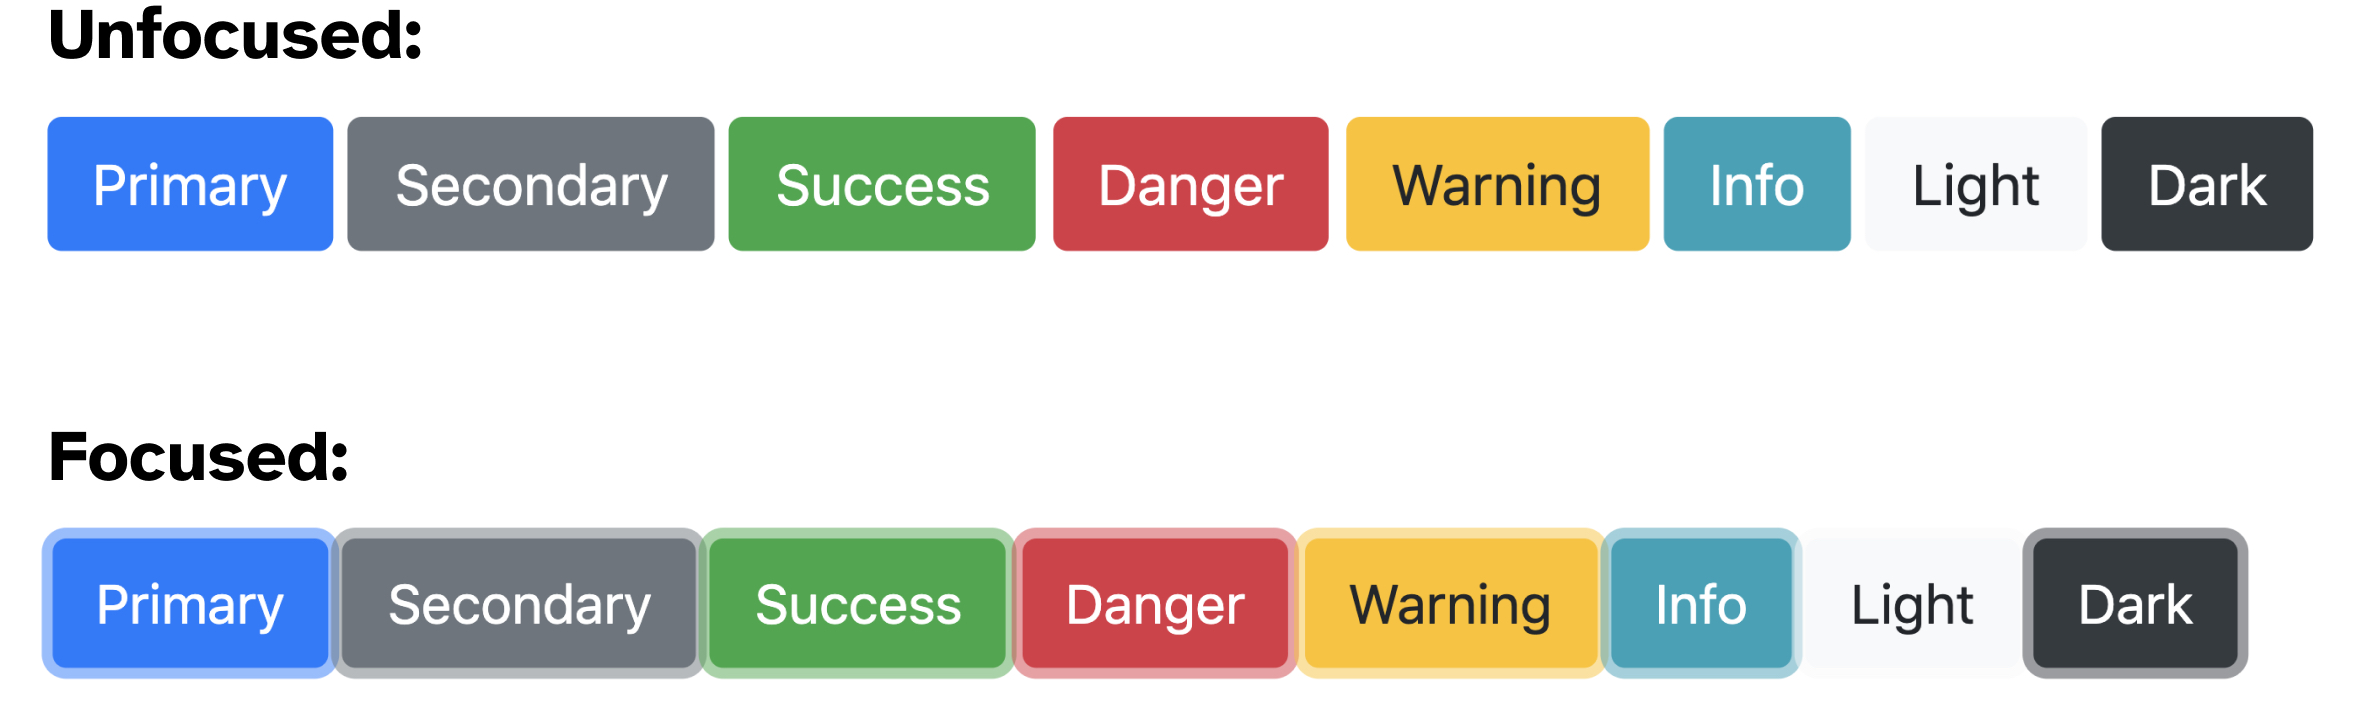 A screenshot of buttons from Bootstrap 4's component library in their unfocused state. Below it, is a screenshot of those buttons with their focus indicators visible. The focus indicators are 2px or 3px-thick outlines with lighter versions of the colors used in their backgrounds.